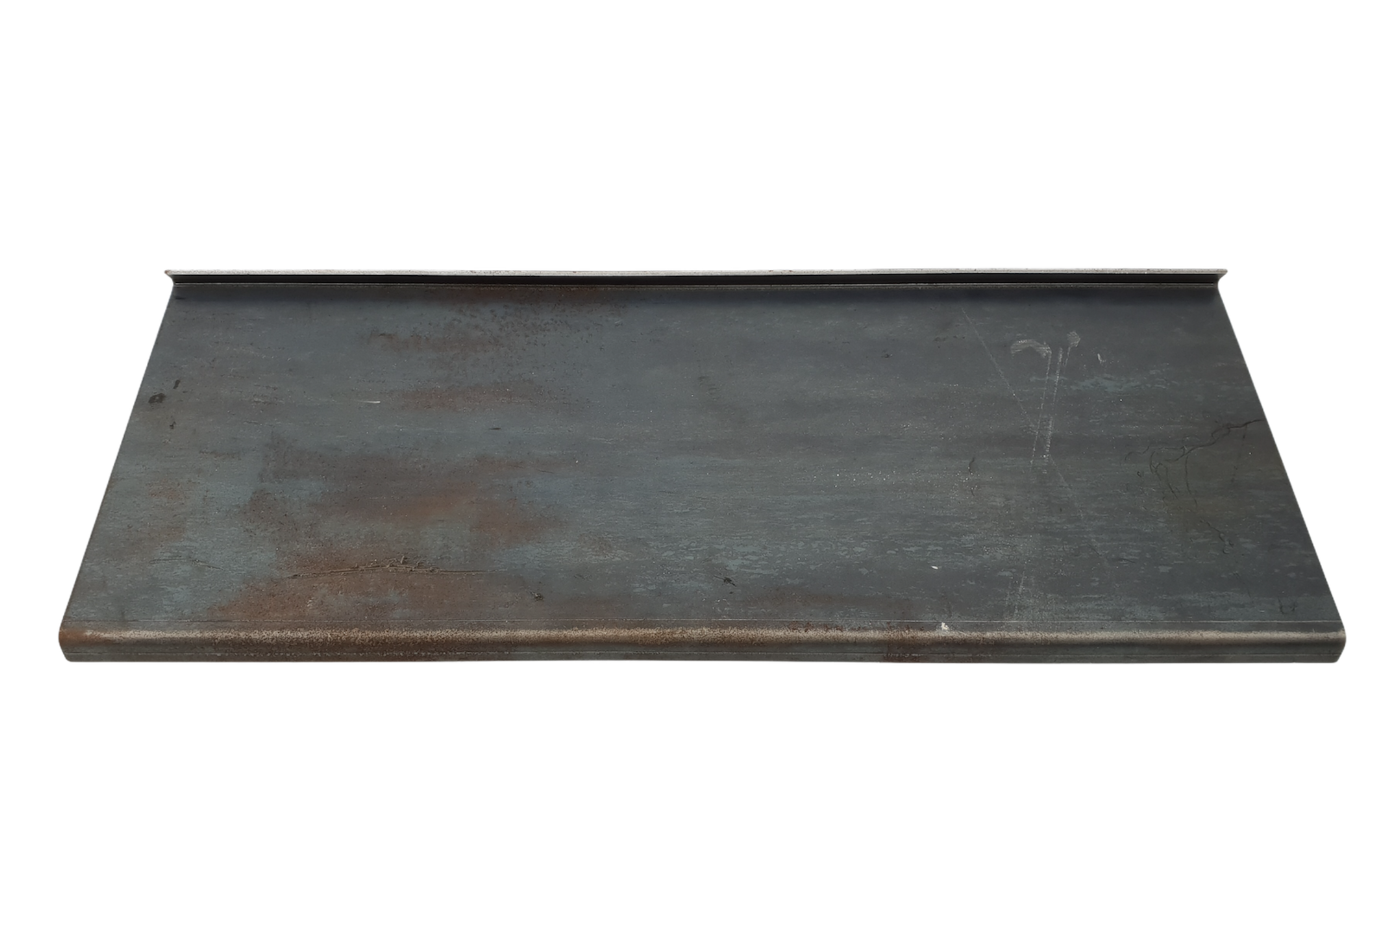 A baffle plate suitable for an Esse 125 stove.